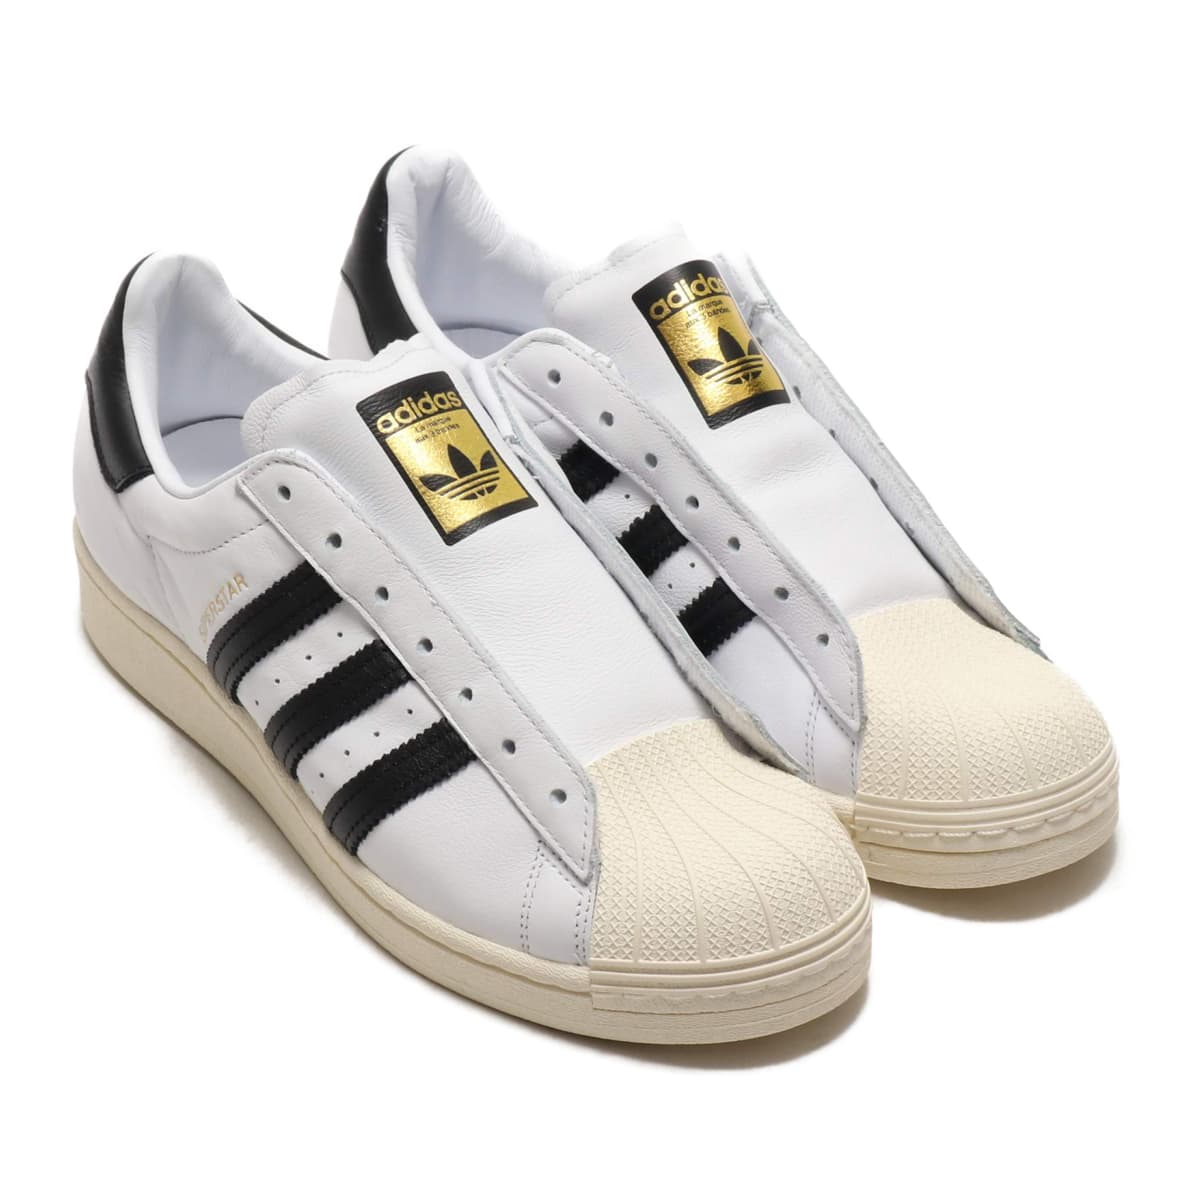 adidas SUPERSTAR LACELESS FOOTWEAR WHITE/CORE BLACK/FOOTWEAR WHITE 20SS-S_photo_large